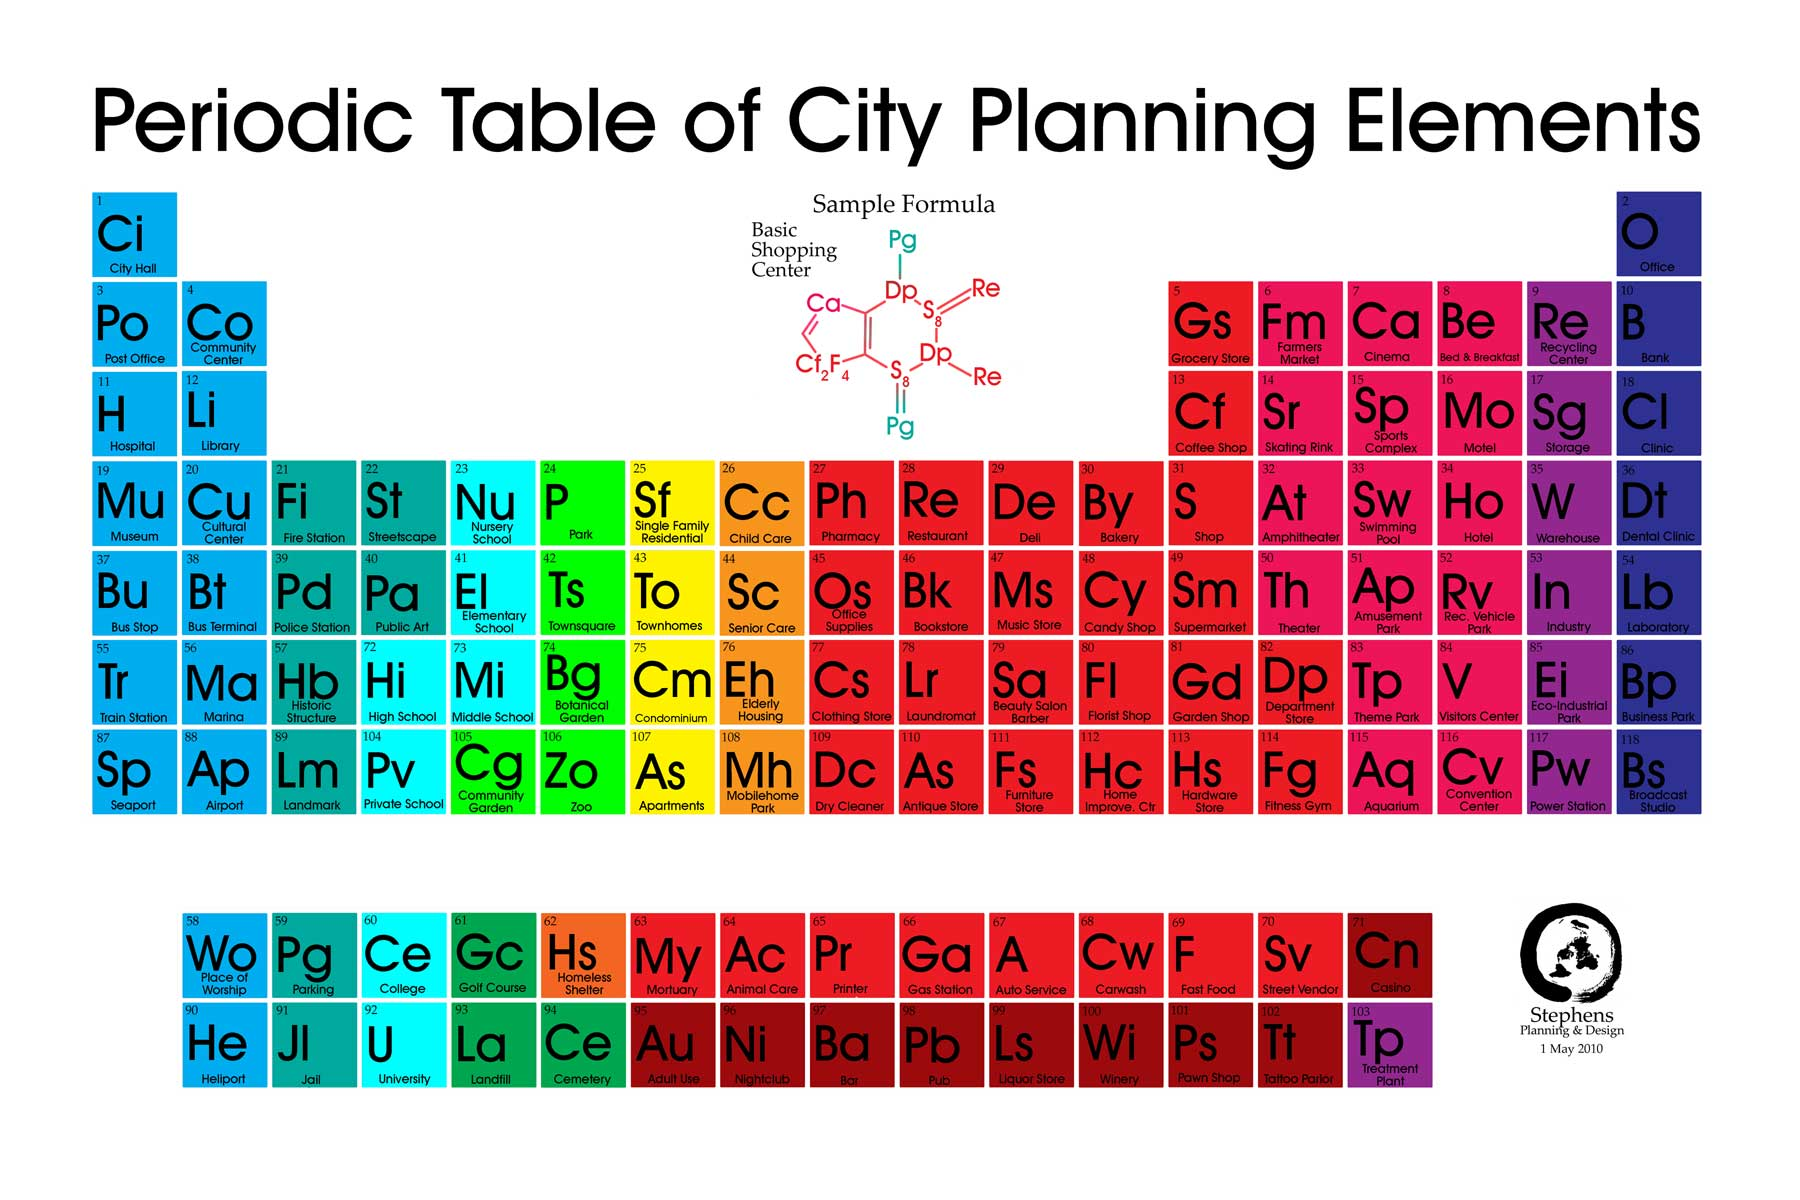 The periodic table of city planning elements features planetizen click the image to see a larger version in a new window urtaz Choice Image